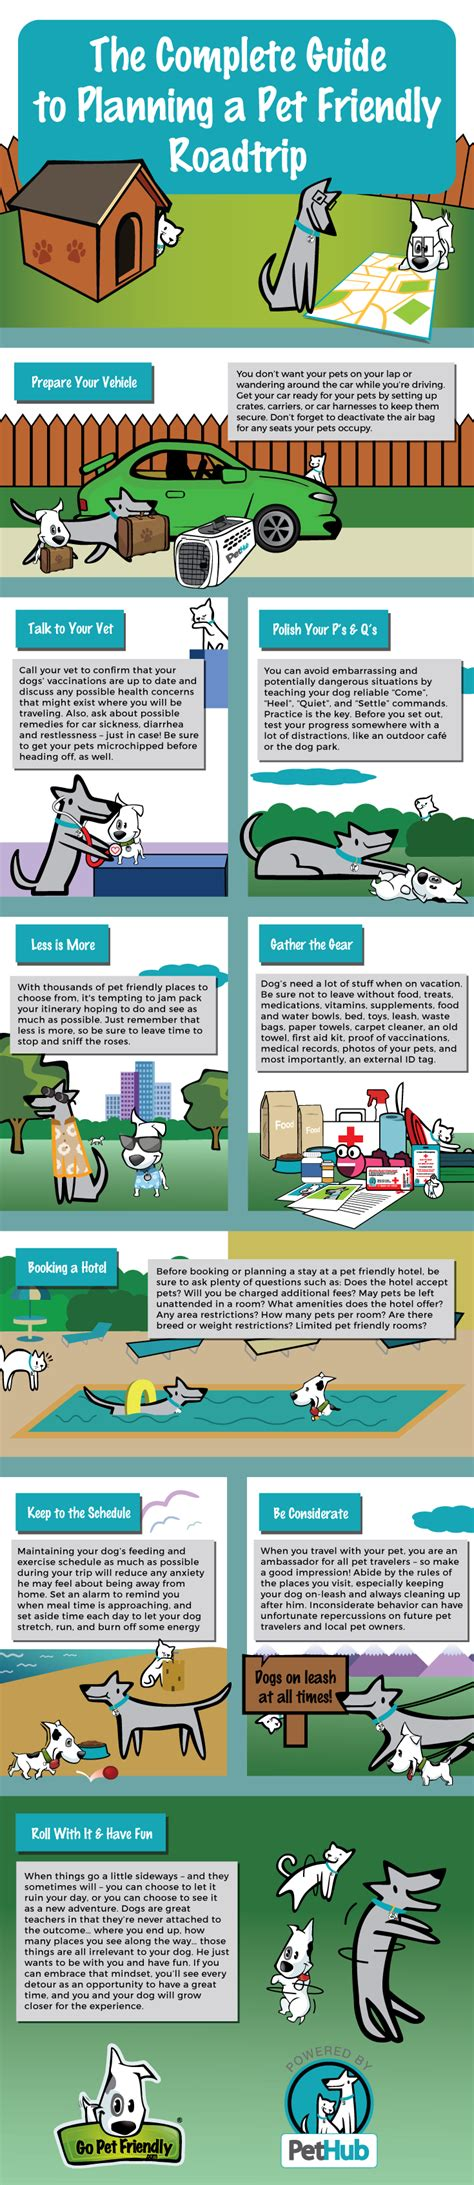 multi engine guide the comprehensive guide to prepare you for the faa checkride guide series books complete guide to pet friendly road trips infographic